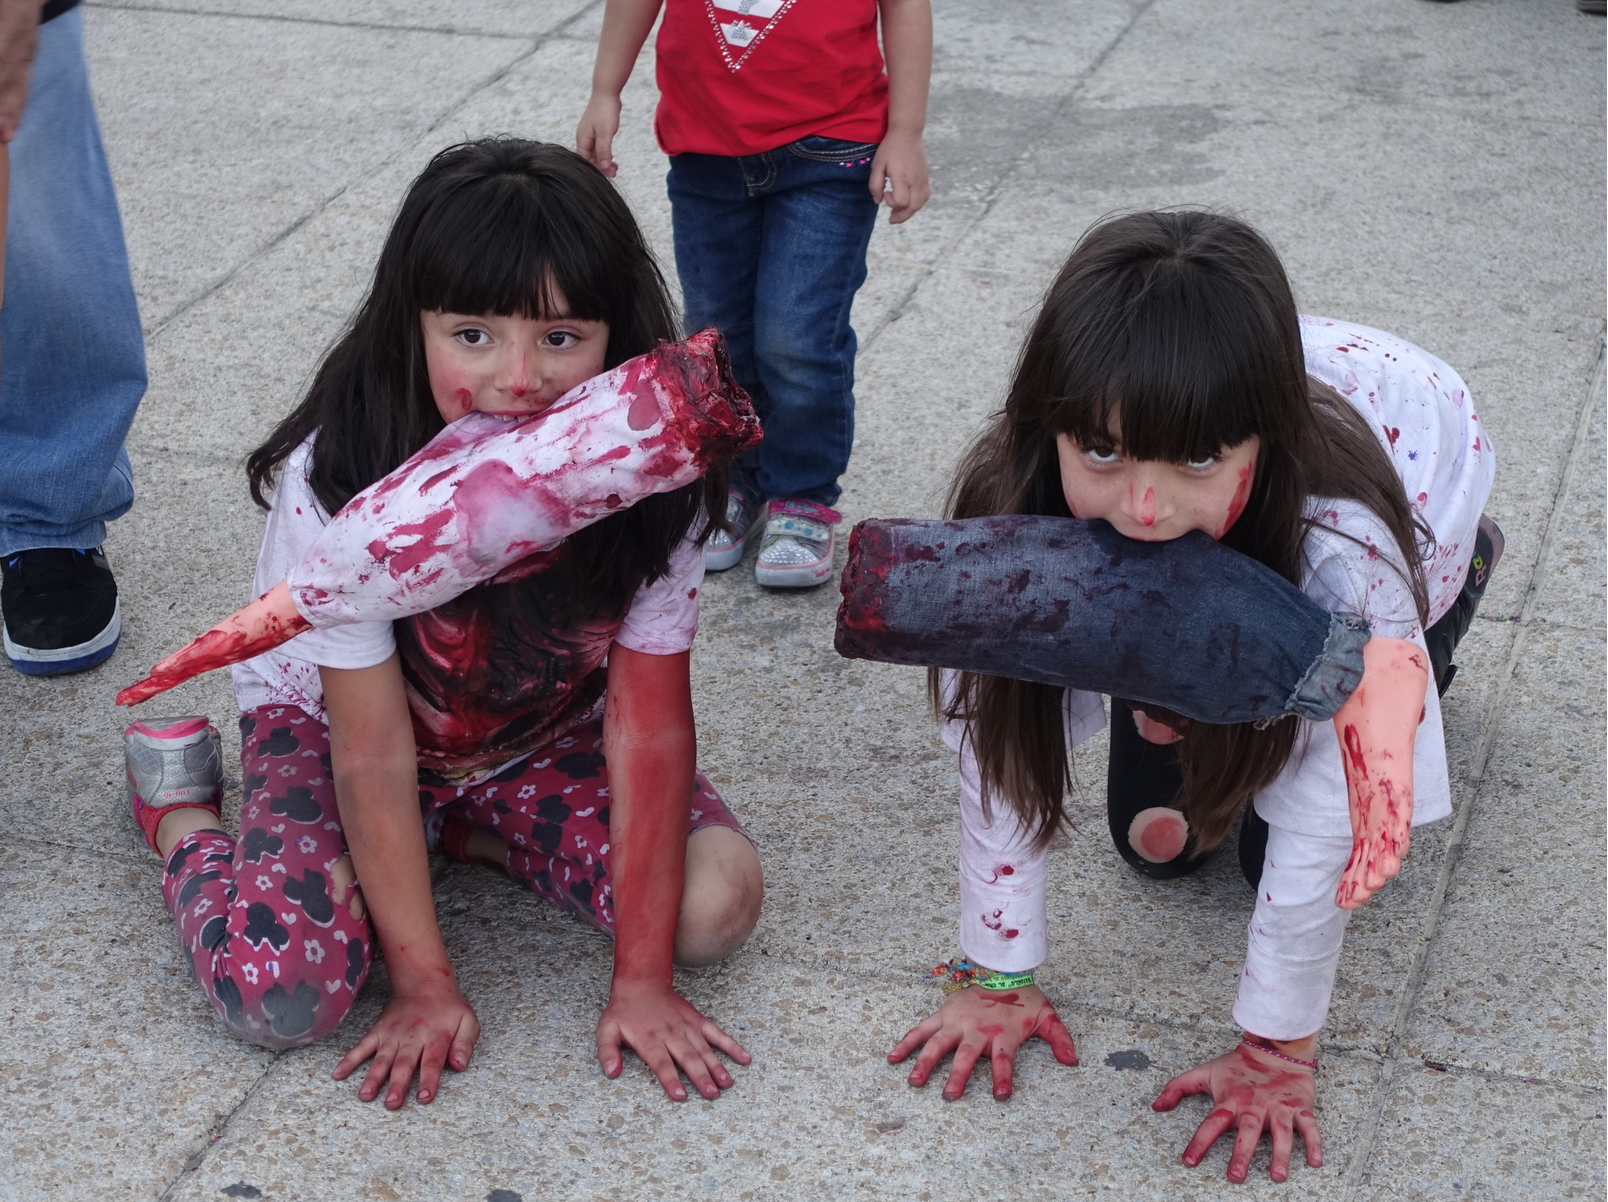 These two young girls were part of a Saturday afternoon Zombie walk in Mexico City that included many young children and very graphic costumes.  The amazing thing was that it was a fun family event with over 10,000 people of all ages having fun? These two girls with their parents permission willingly posed for this photo with big smiles.